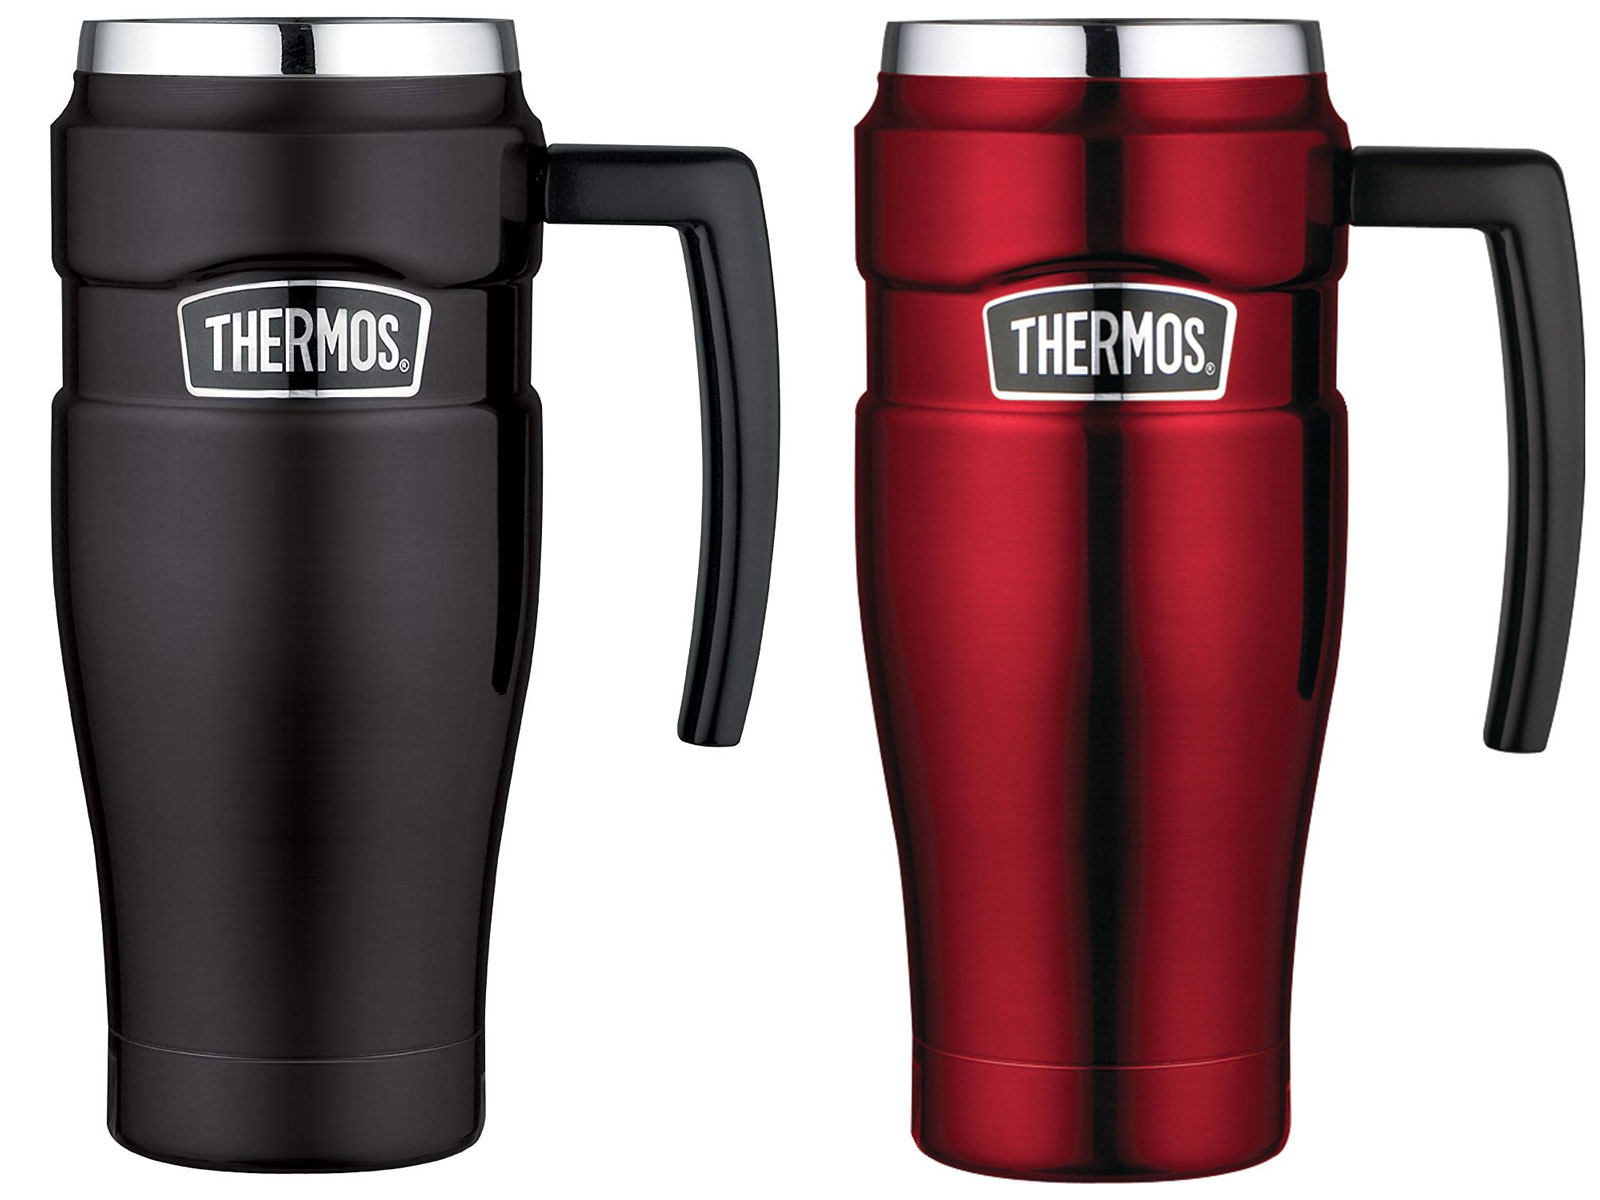 thermo coffee mugs